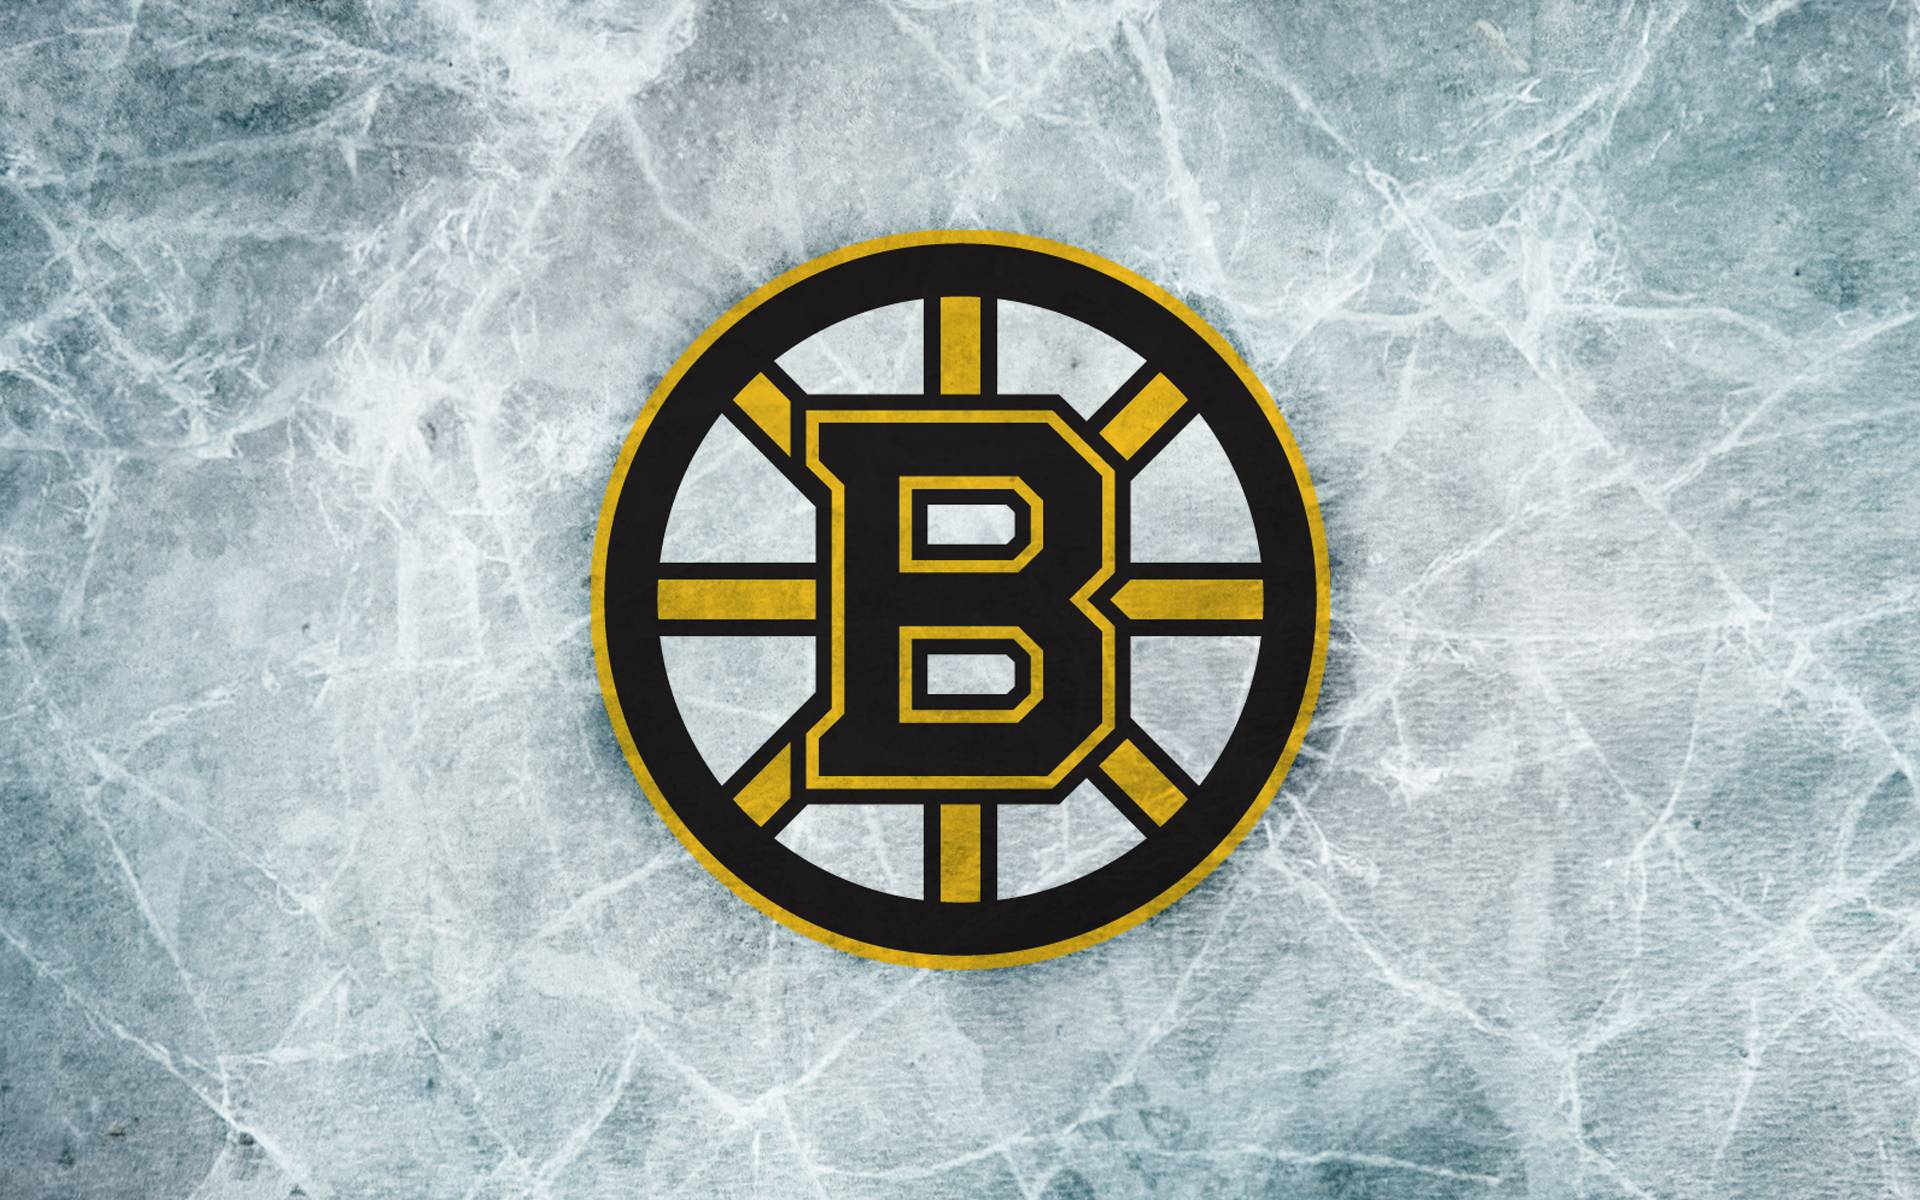 Boston Bruins wallpapers | Boston Bruins background - Page 4